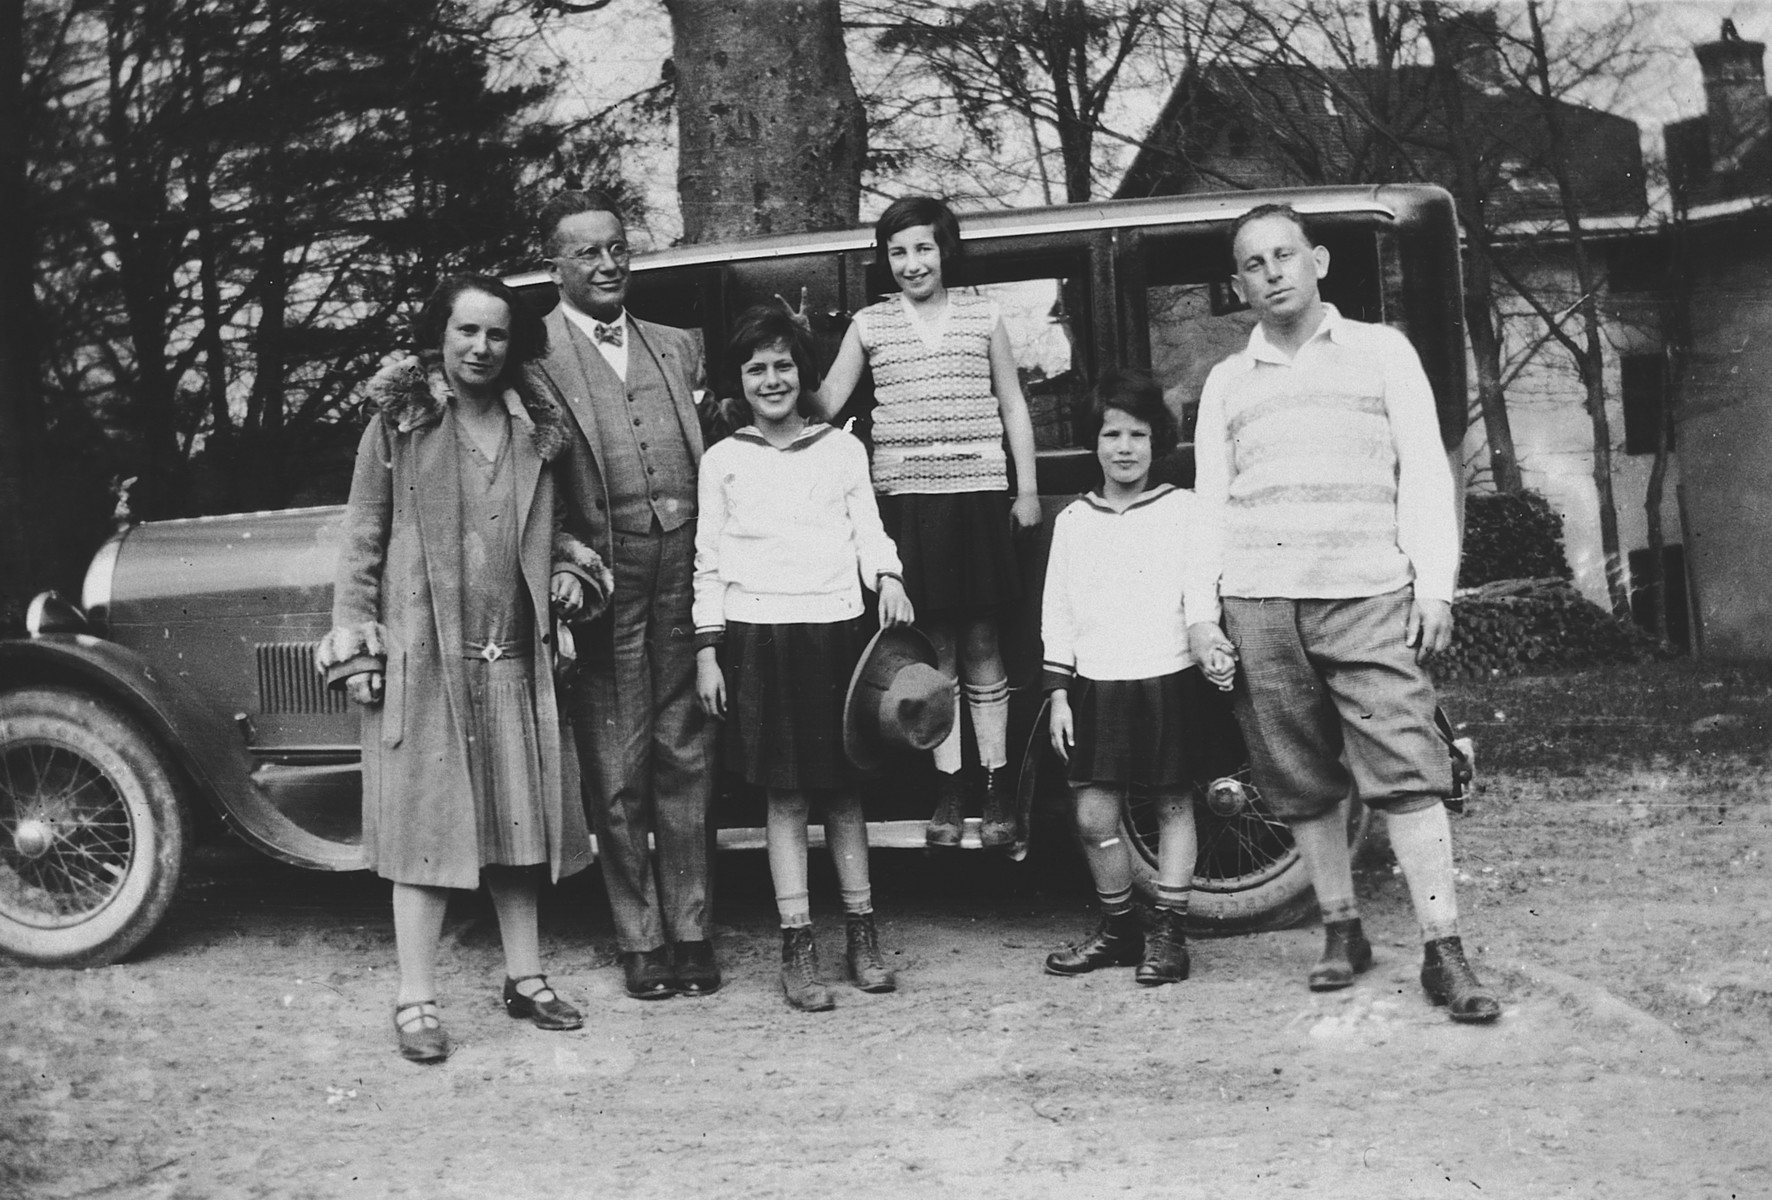 An Austrian Jewish family poses in front of a large automobile.  From left to right are Rachel Deutsch, Max, Judith Deutsch, Boli, Hanni Deutsch and Amiel.